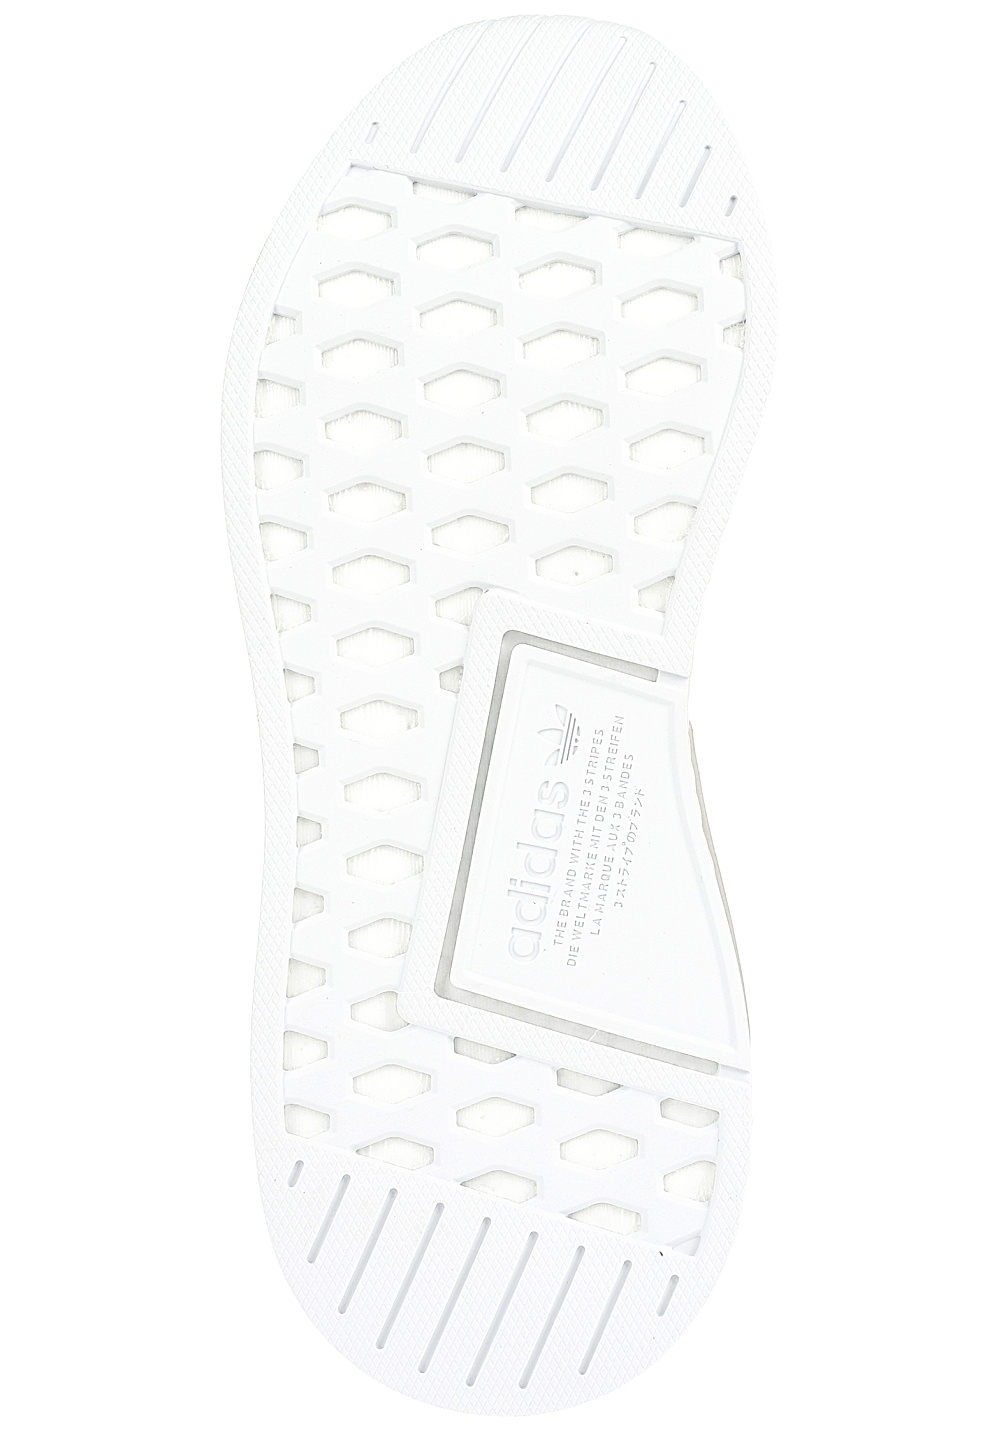 cae37e980ef9c ADIDAS ORIGINALS NMD R2 Primeknit - Sneakers for Women - White ...